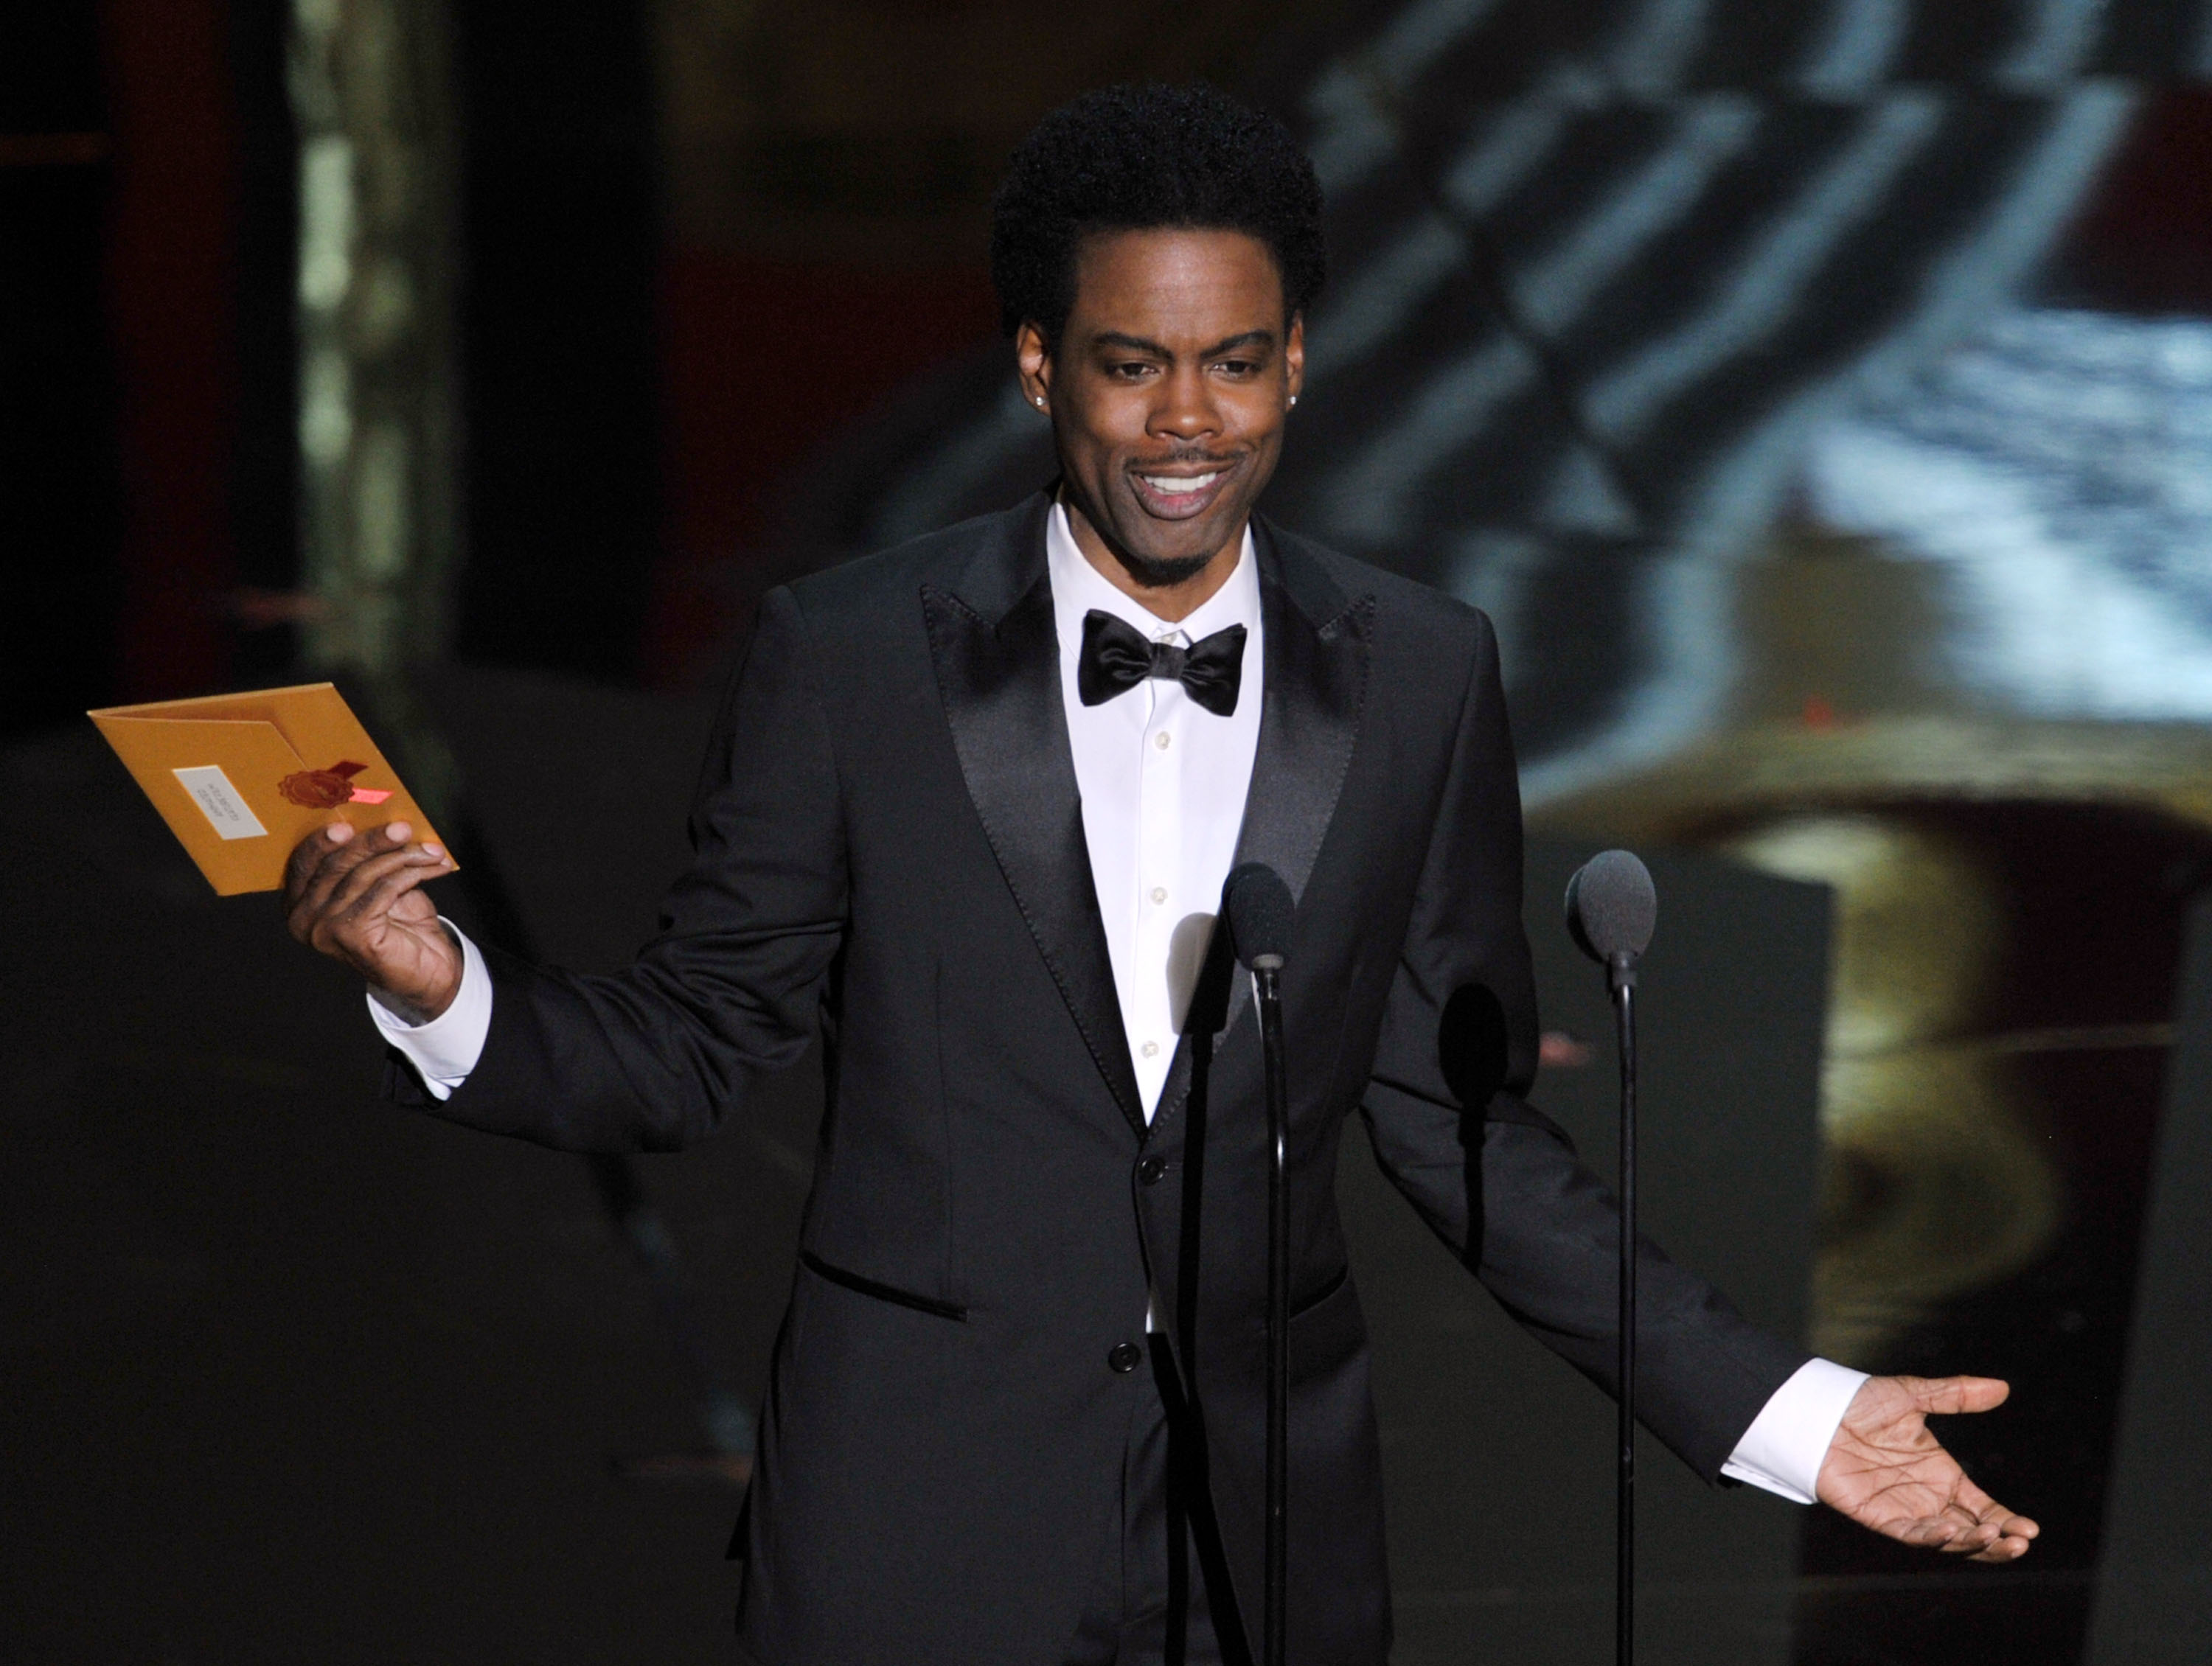 Chris Rocks Most Scathing Remarks From The Oscars recommend